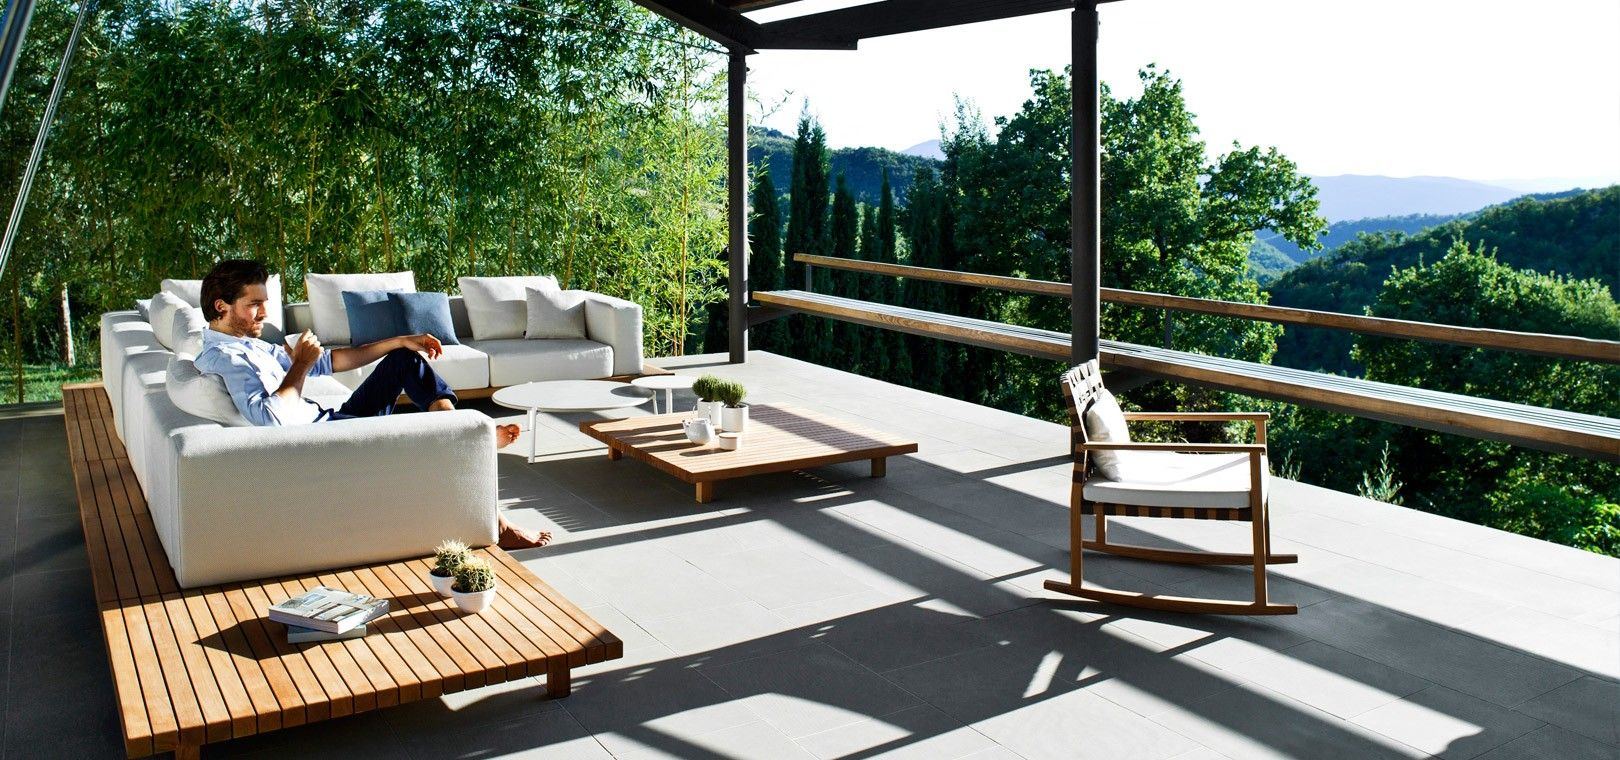 The Vis à vis sofa from Tribù, is an exclusive outdoor lounge sofa ...